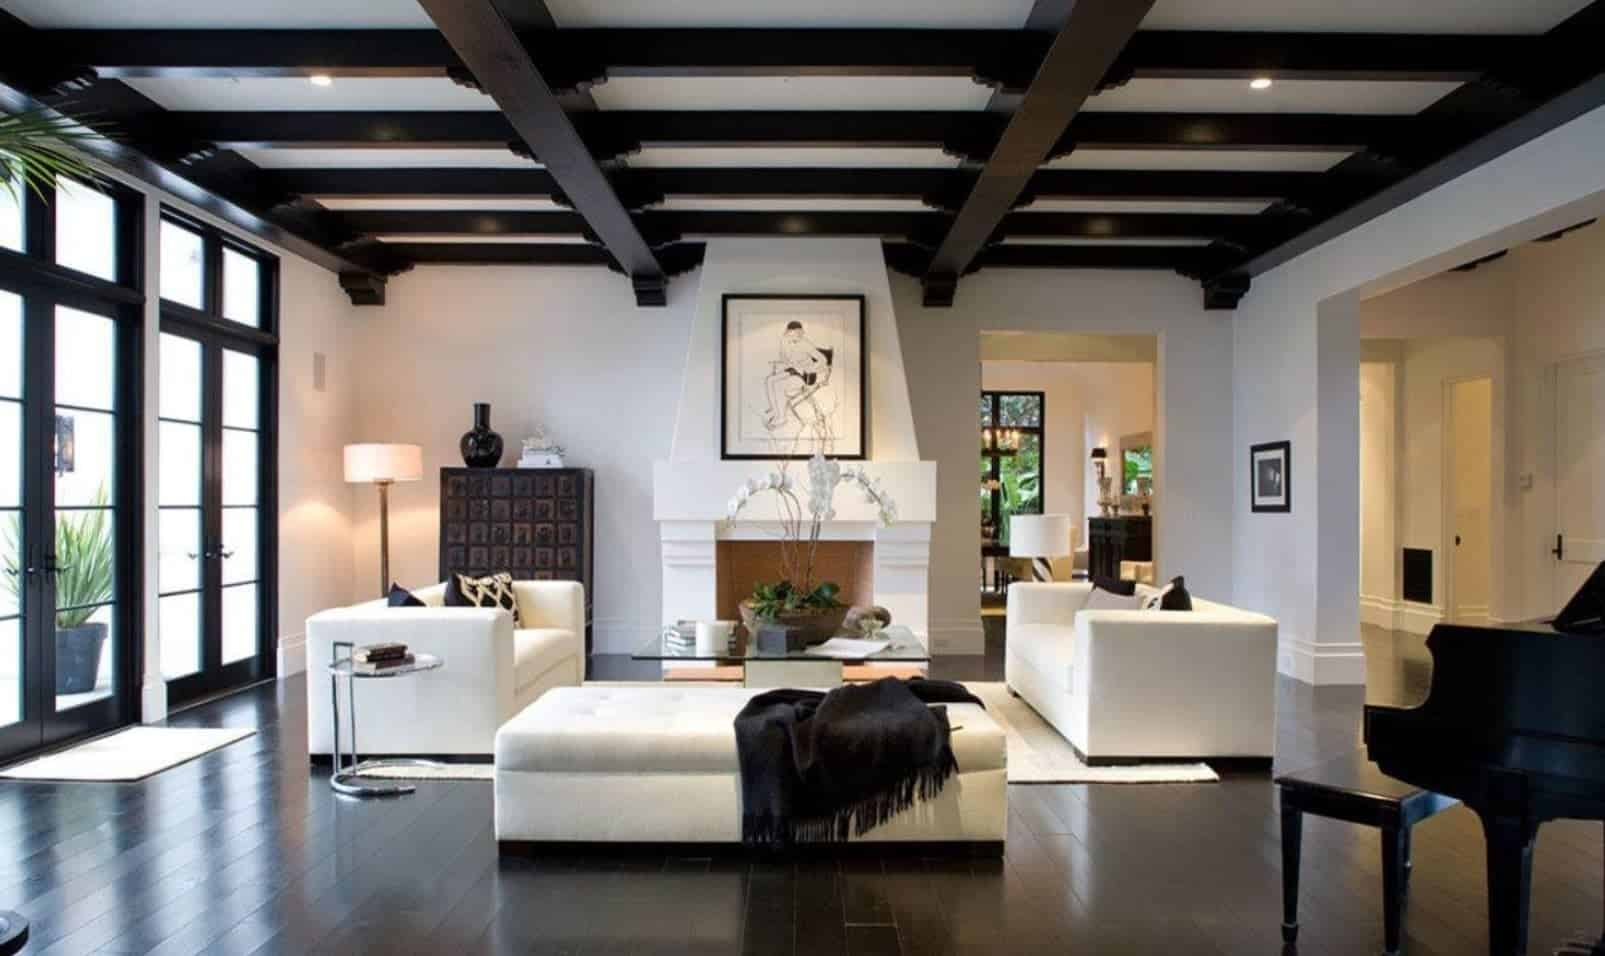 Modern white living room beautifully contrasted with a stylish black beam ceiling and hardwood flooring. It has white matching sofas and tufted bench accented with black pillows and throw blanket.